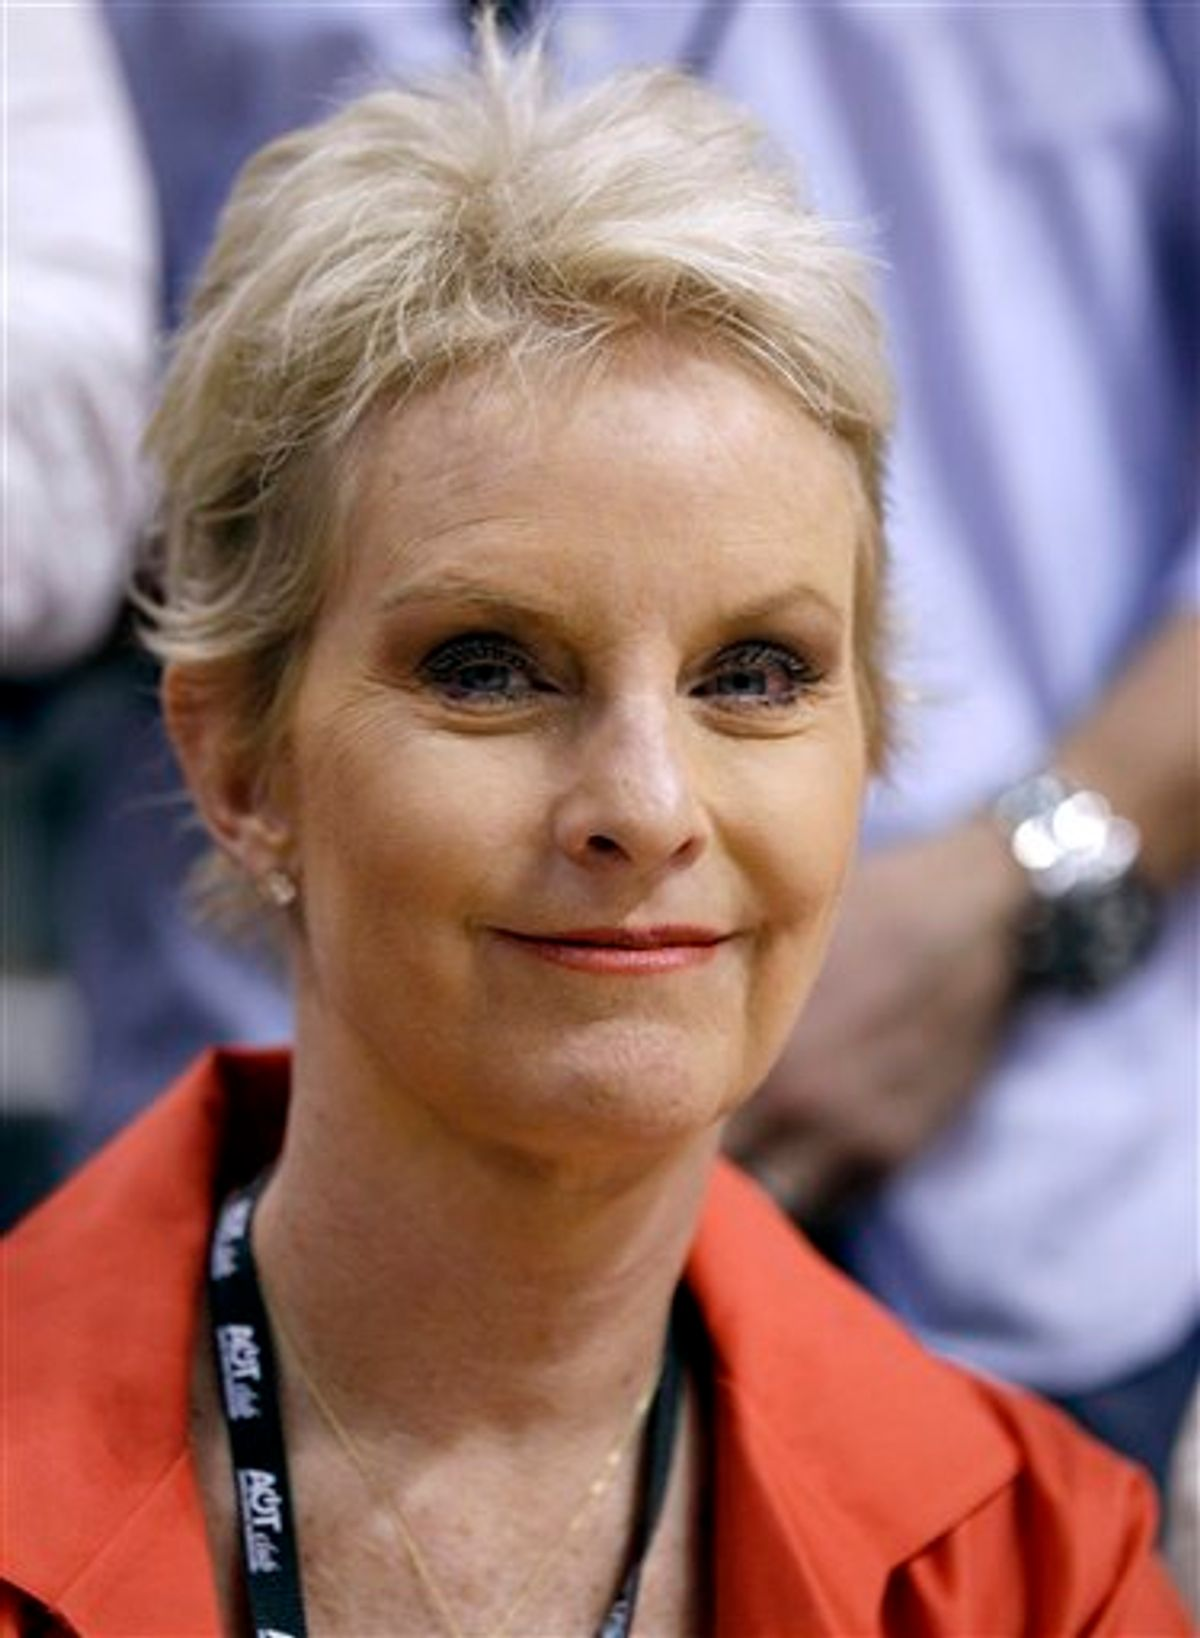 FILE - In this May 25, 2010 file photo, Cindy McCain, wife of Sen. John McCain, R-Ariz., is seen in Phoenix. McCain, the wife of 2008 Republican presidential nominee John McCain, is speaking out against the ban on gays serving openly in the military while her husband is working to maintain it. (AP Photo/Ross D. Franklin, File)    (AP)